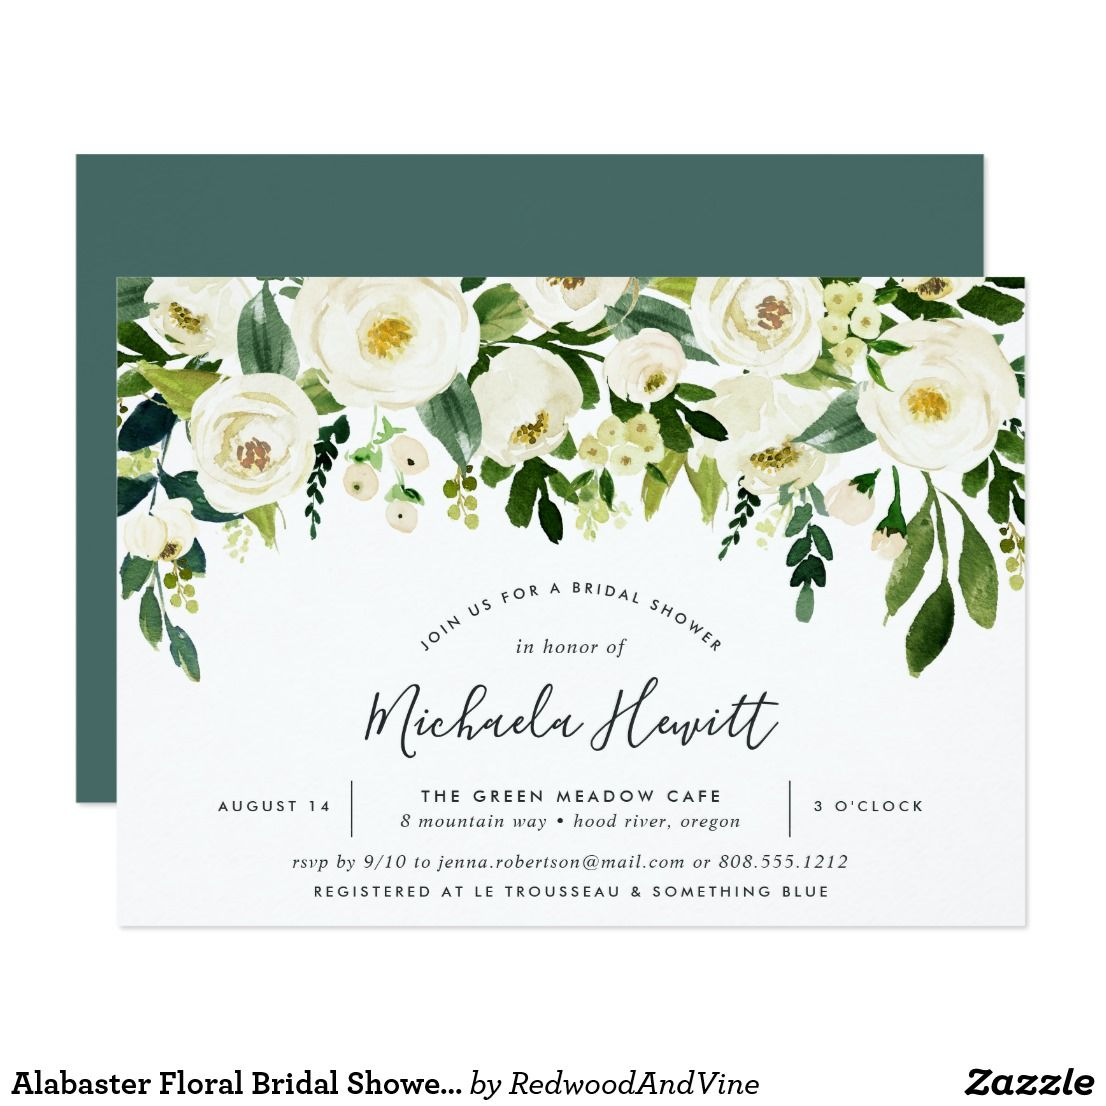 Alabaster Floral Bridal Shower Invitation | Pinterest | Shower ...